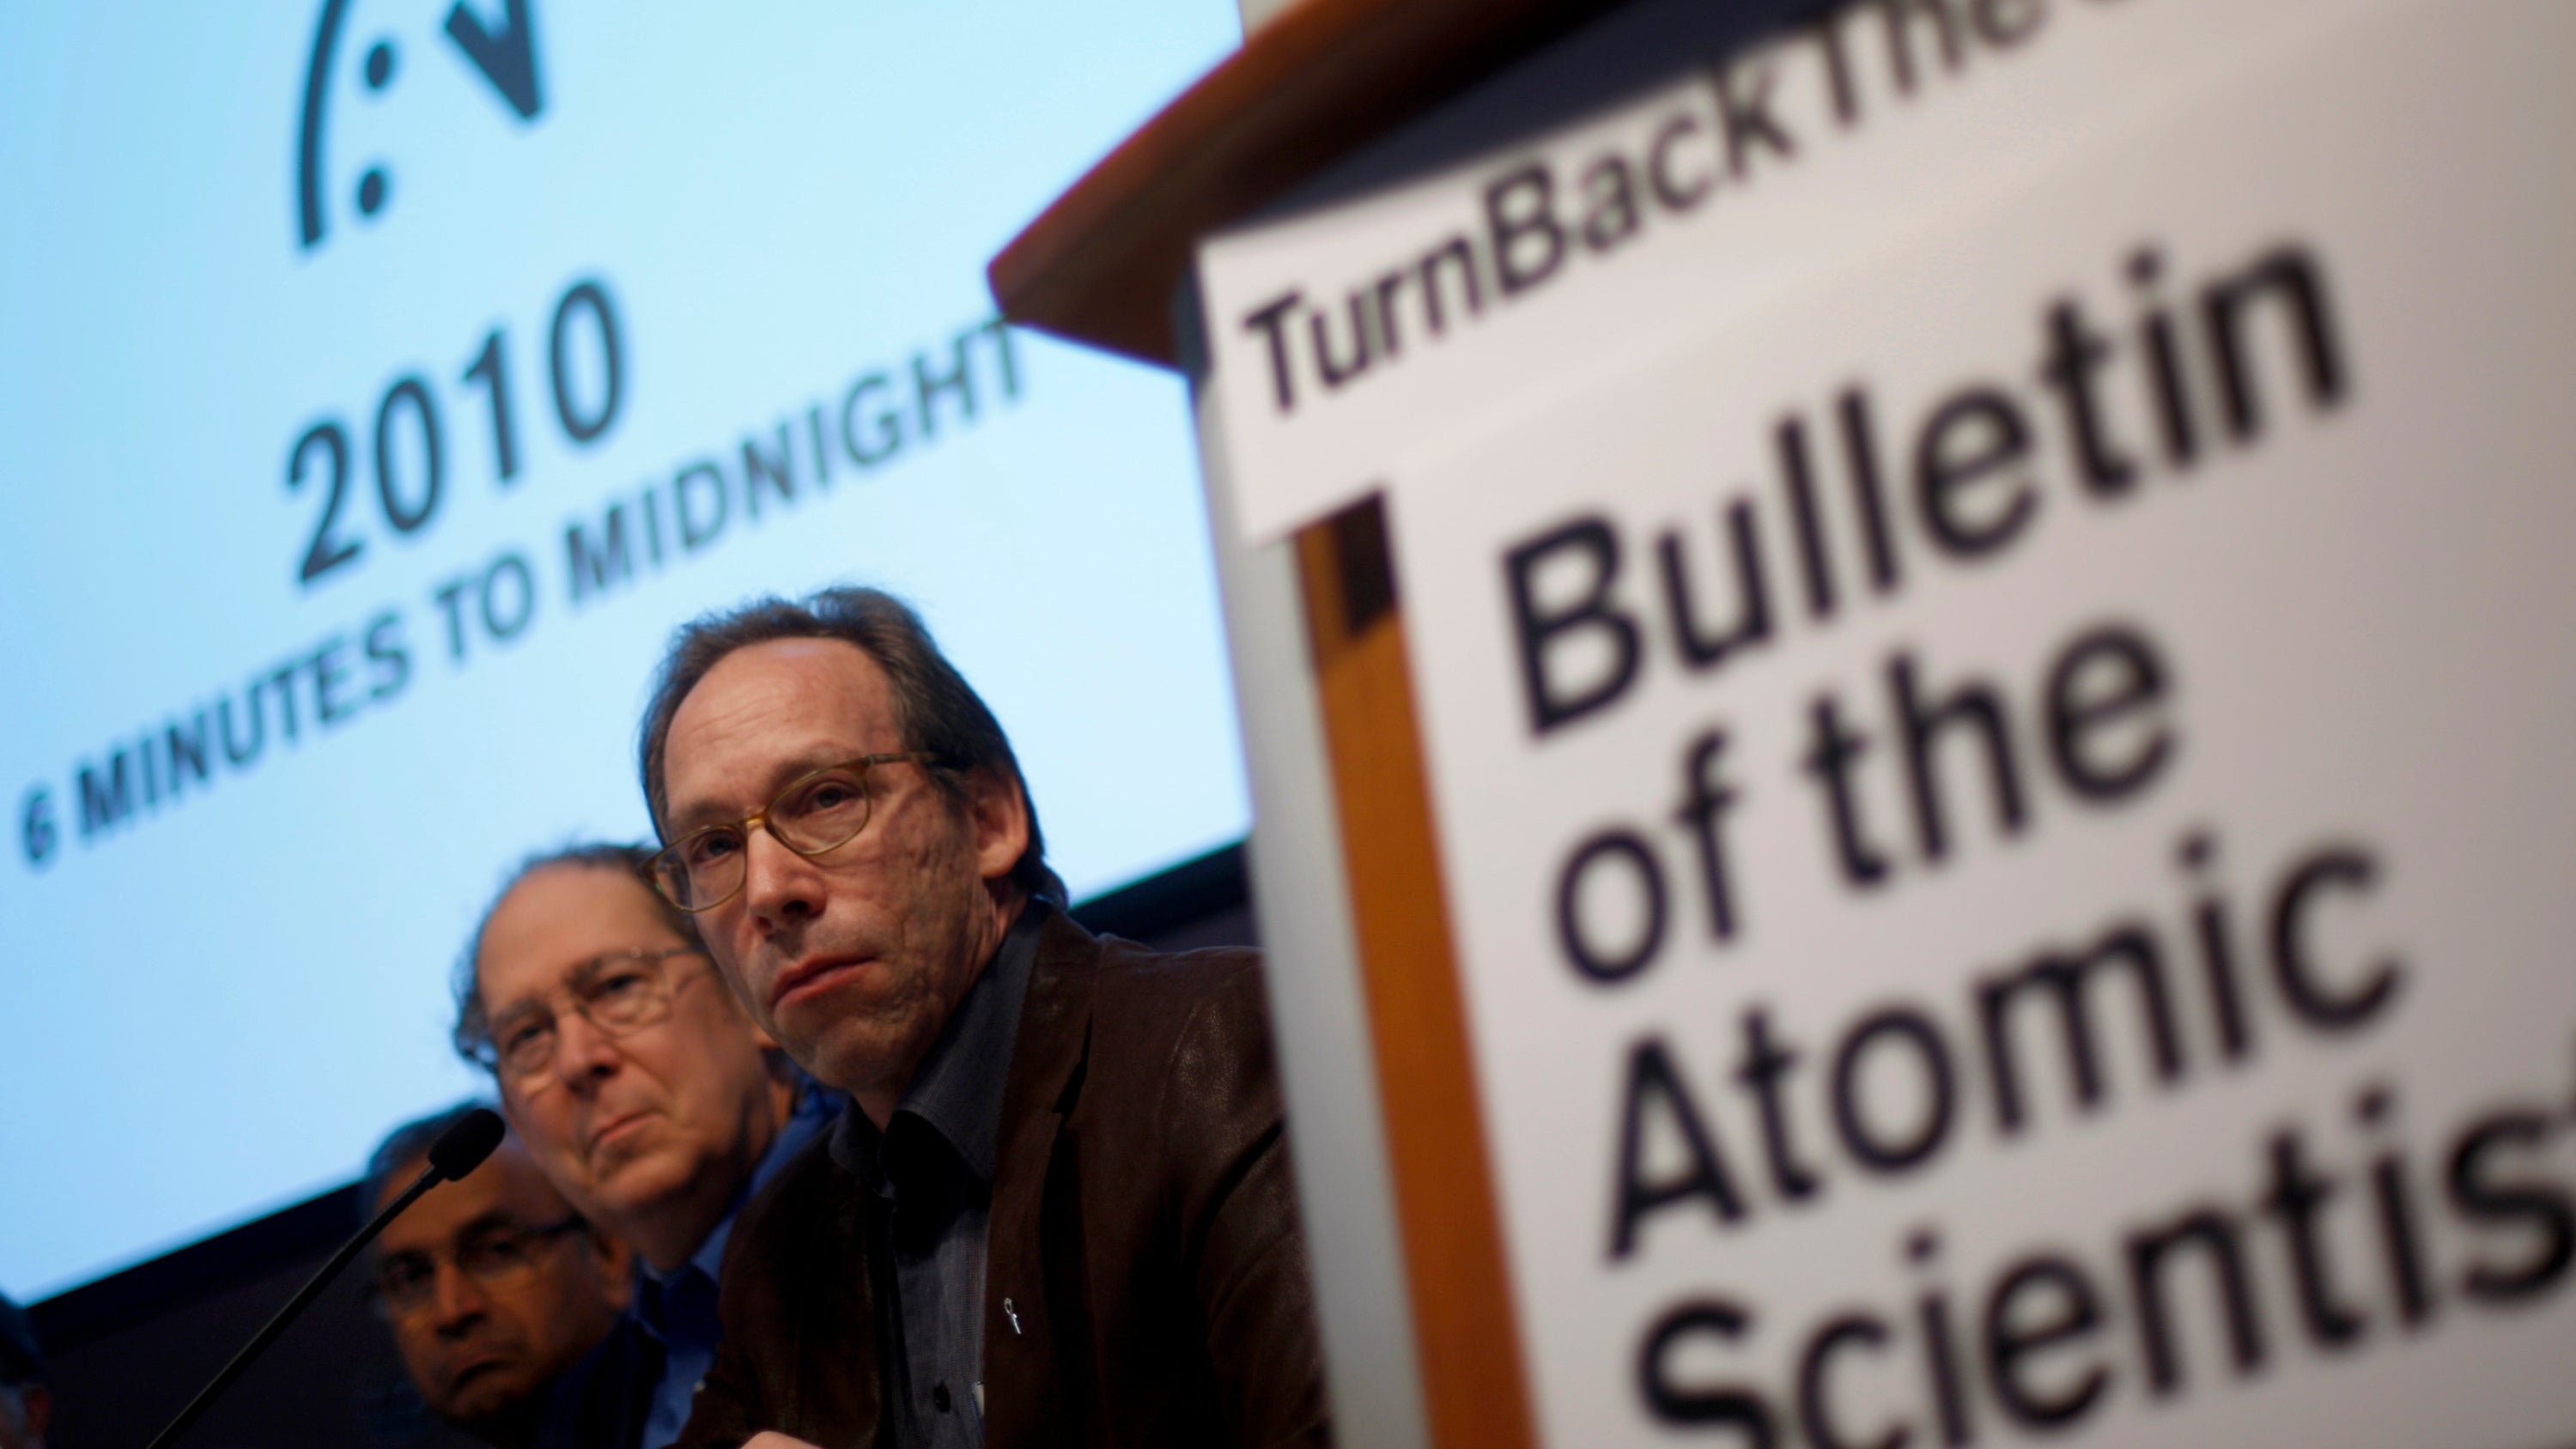 Science Organisations Cancel Lawrence Krauss Events After Sexual Harassment Allegations